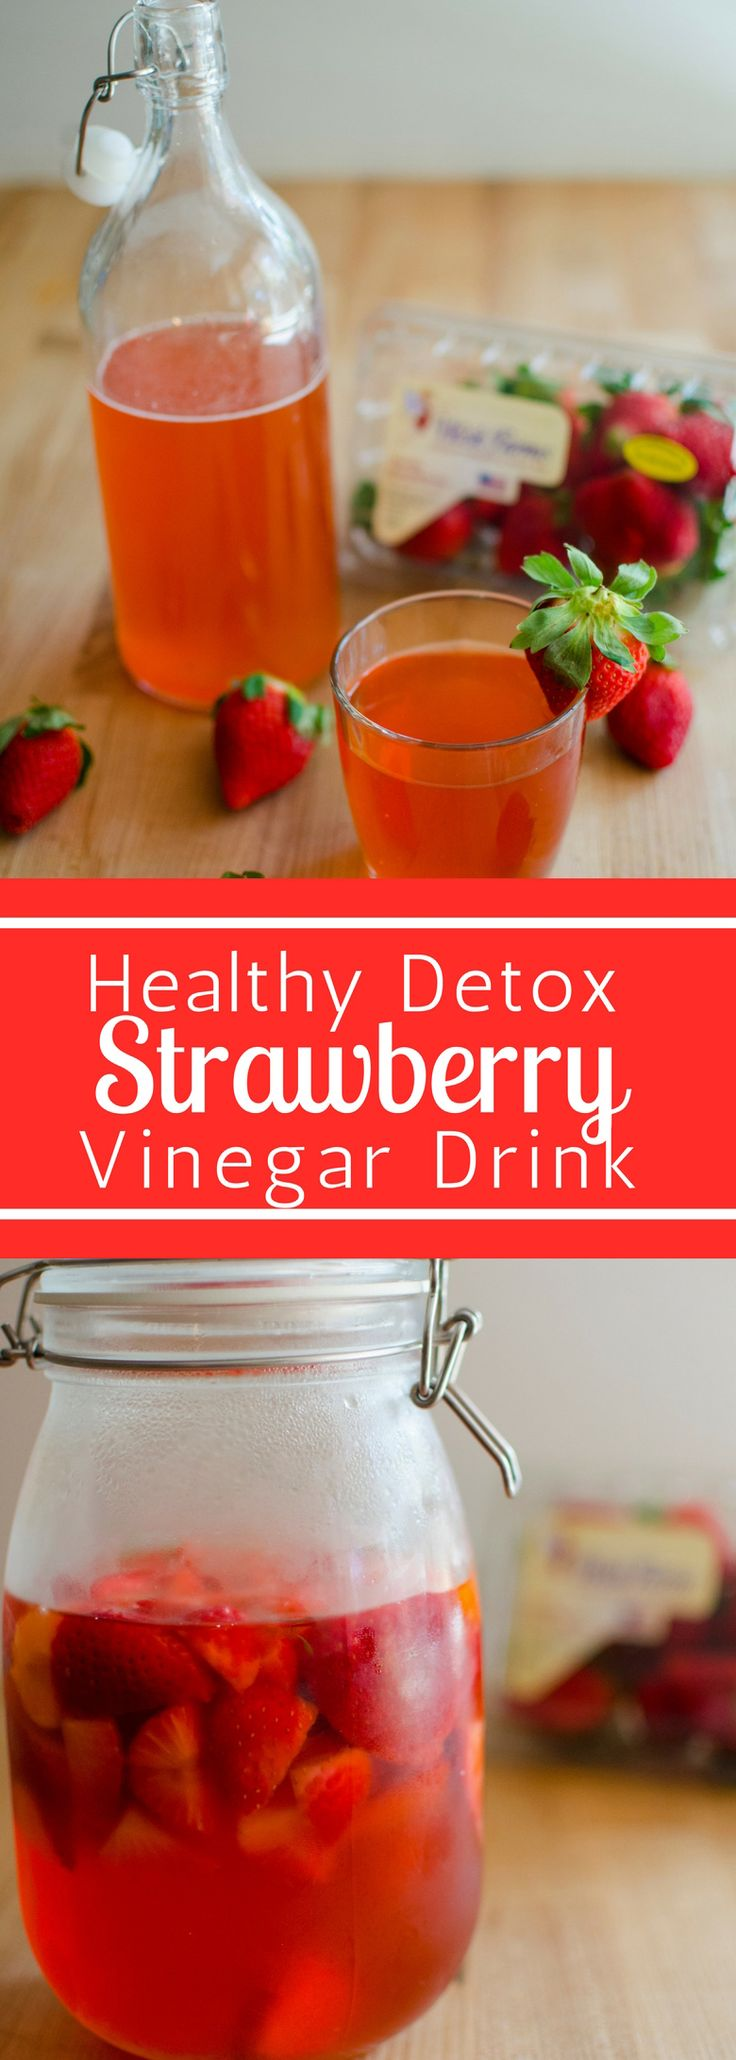 #FLStrawberry Detox Vinegar Drink #SundaySupper. If you haven't hopped on the vinegar drink bandwagon now is the time. This healthy drinks are great for digestion. And this one is delicious and loaded with flavor! The strawberries add a touch of sweetness to this tangy and delicious drink.@Flastrawberries